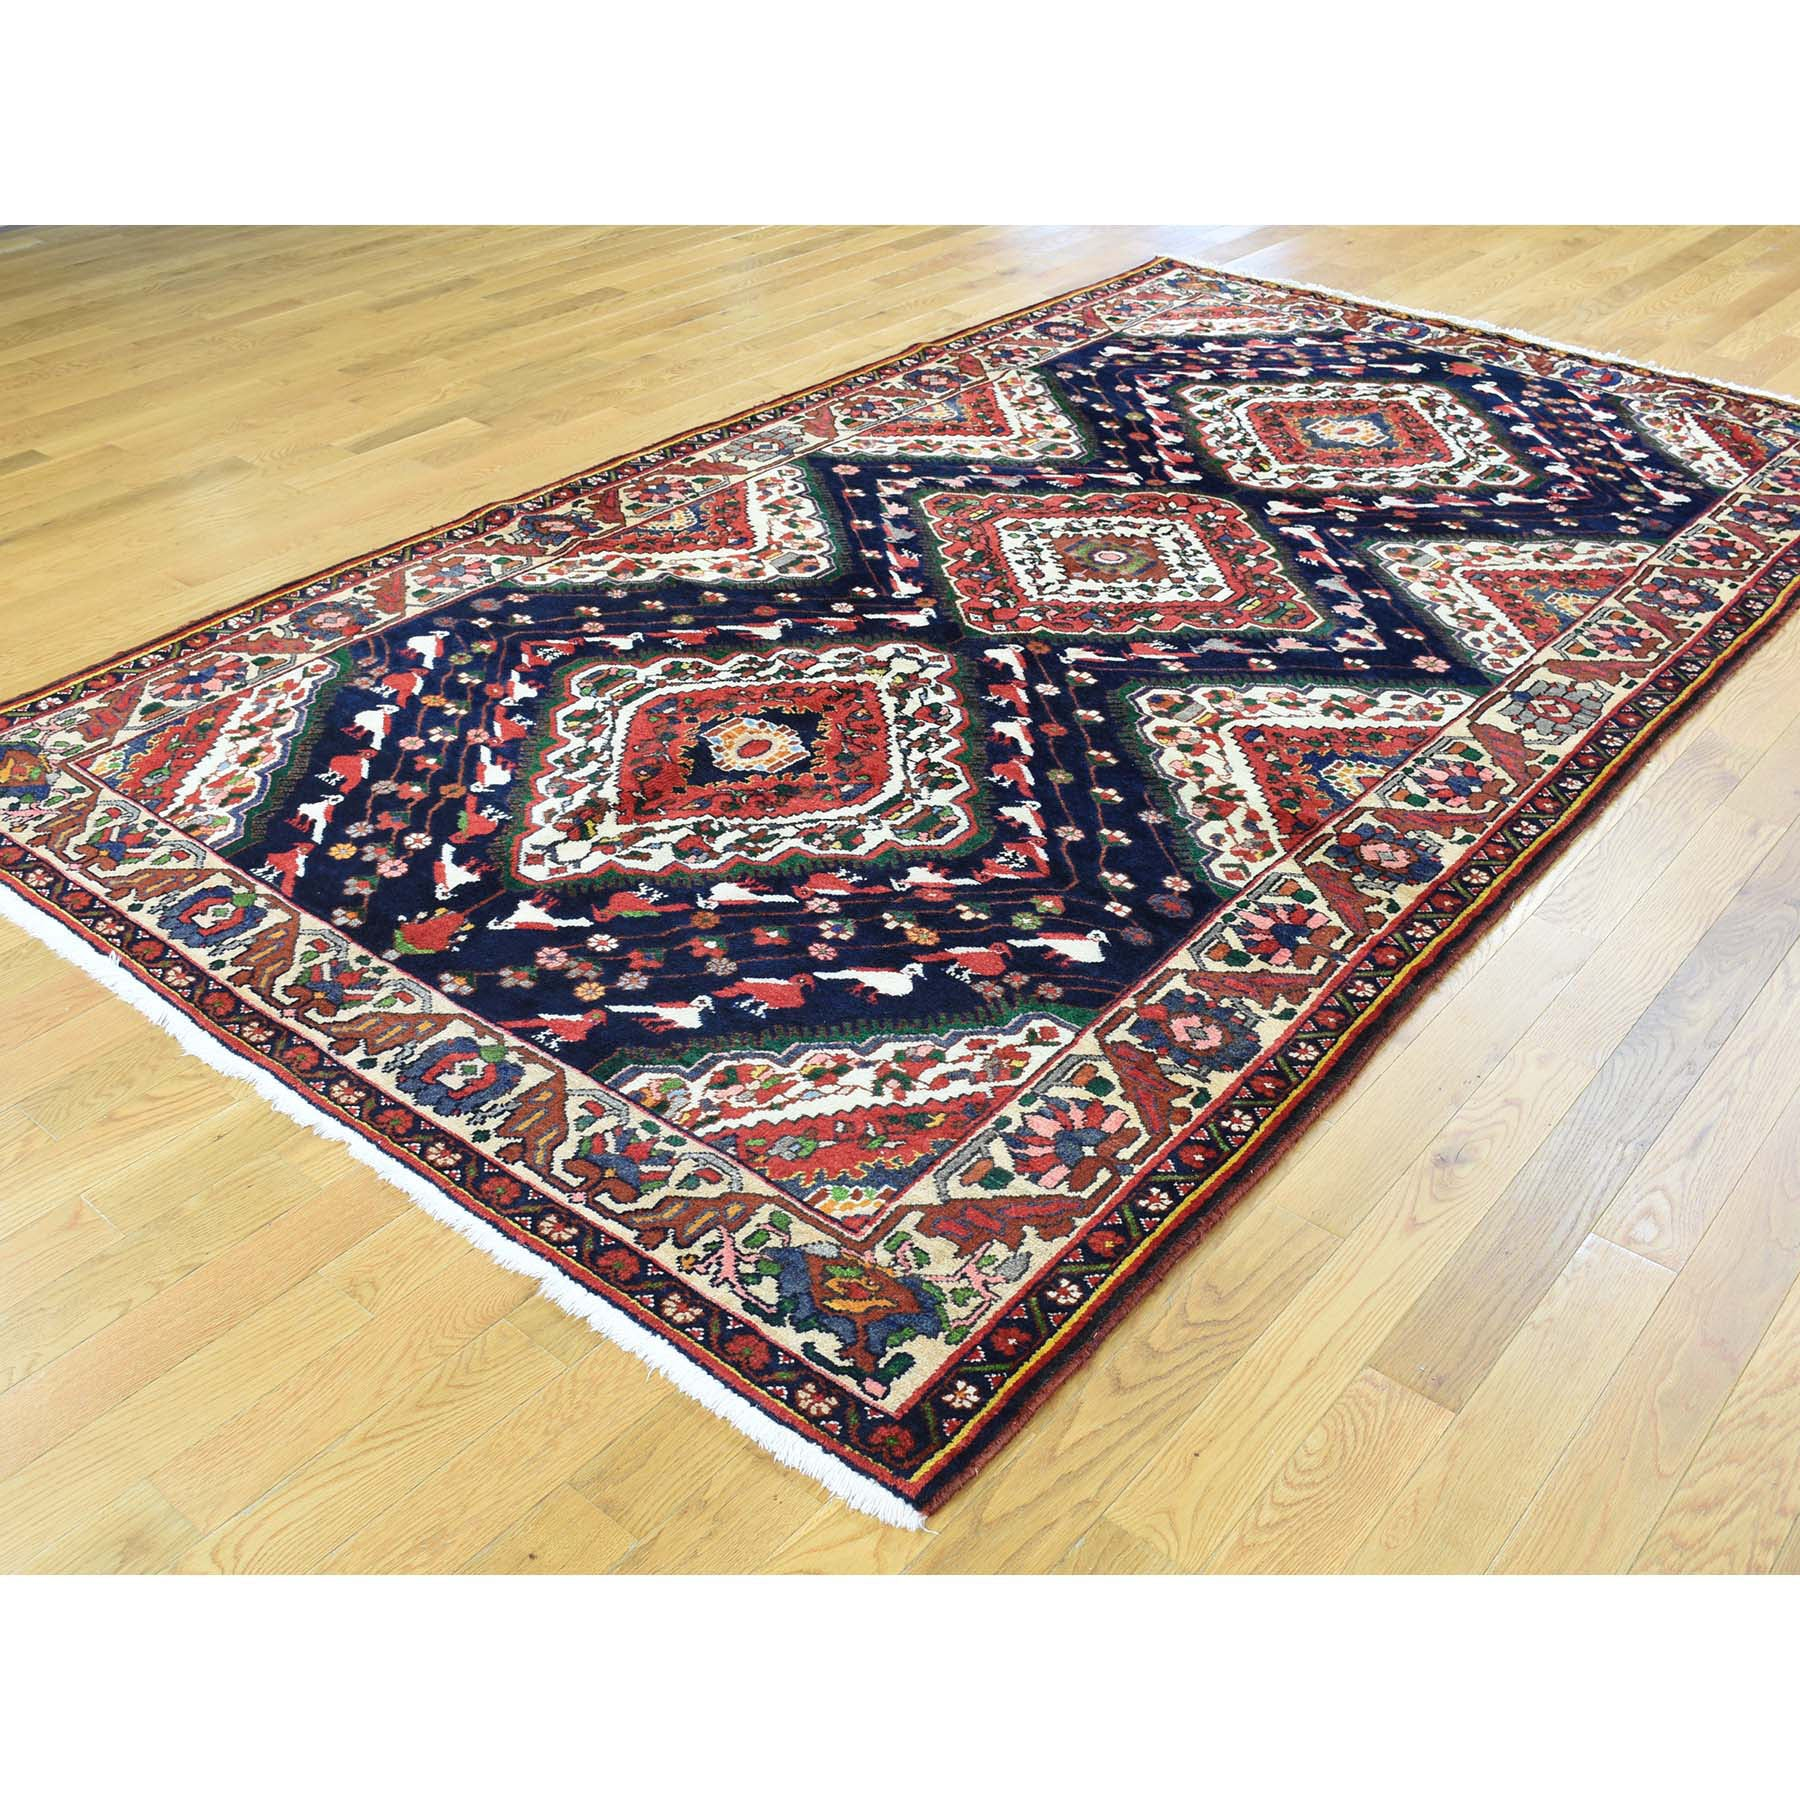 "Handmade Persian Rectangle Rug > Design# SH32280 > Size: 5'-9"" x 9'-10"" [ONLINE ONLY]"